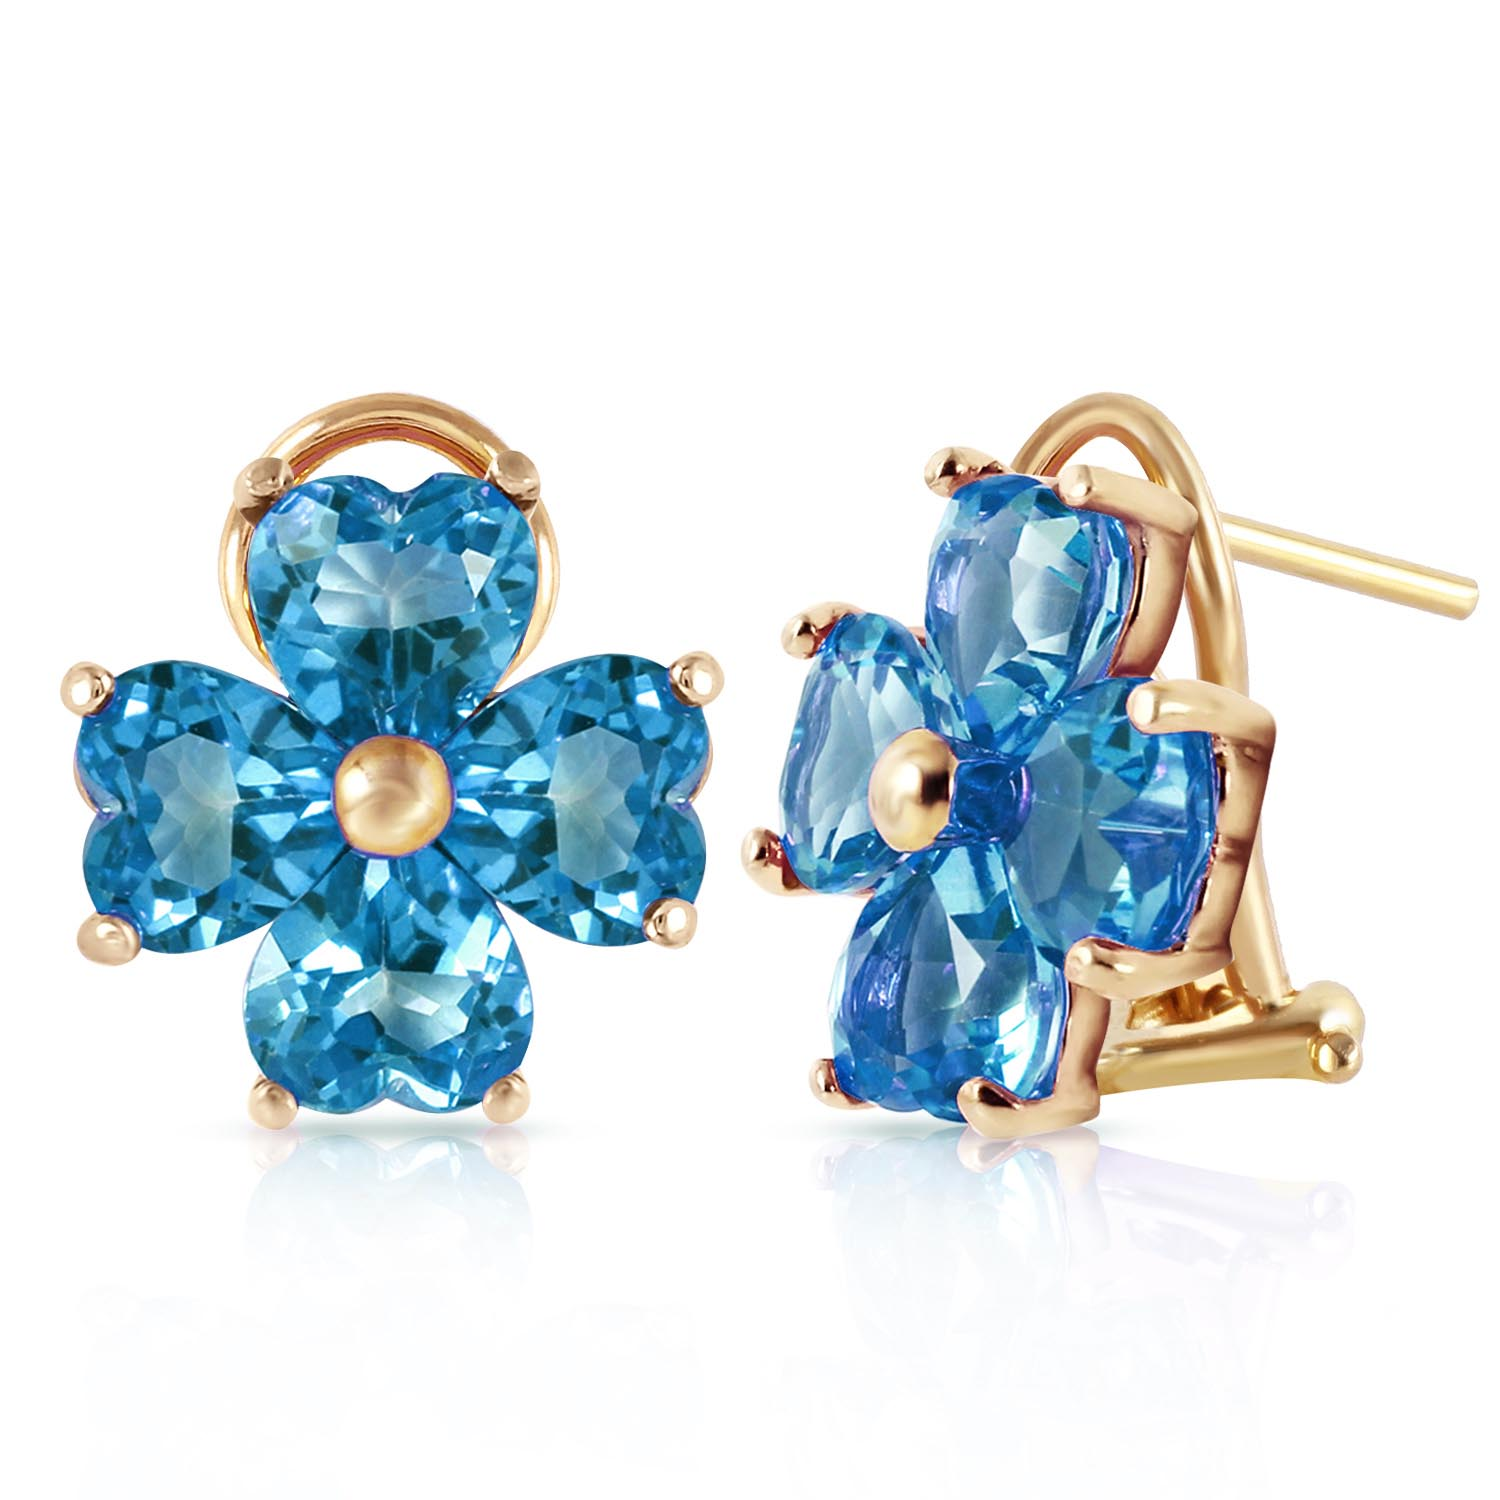 Blue Topaz Flower Stud Earrings 7.6 ctw in 9ct Gold